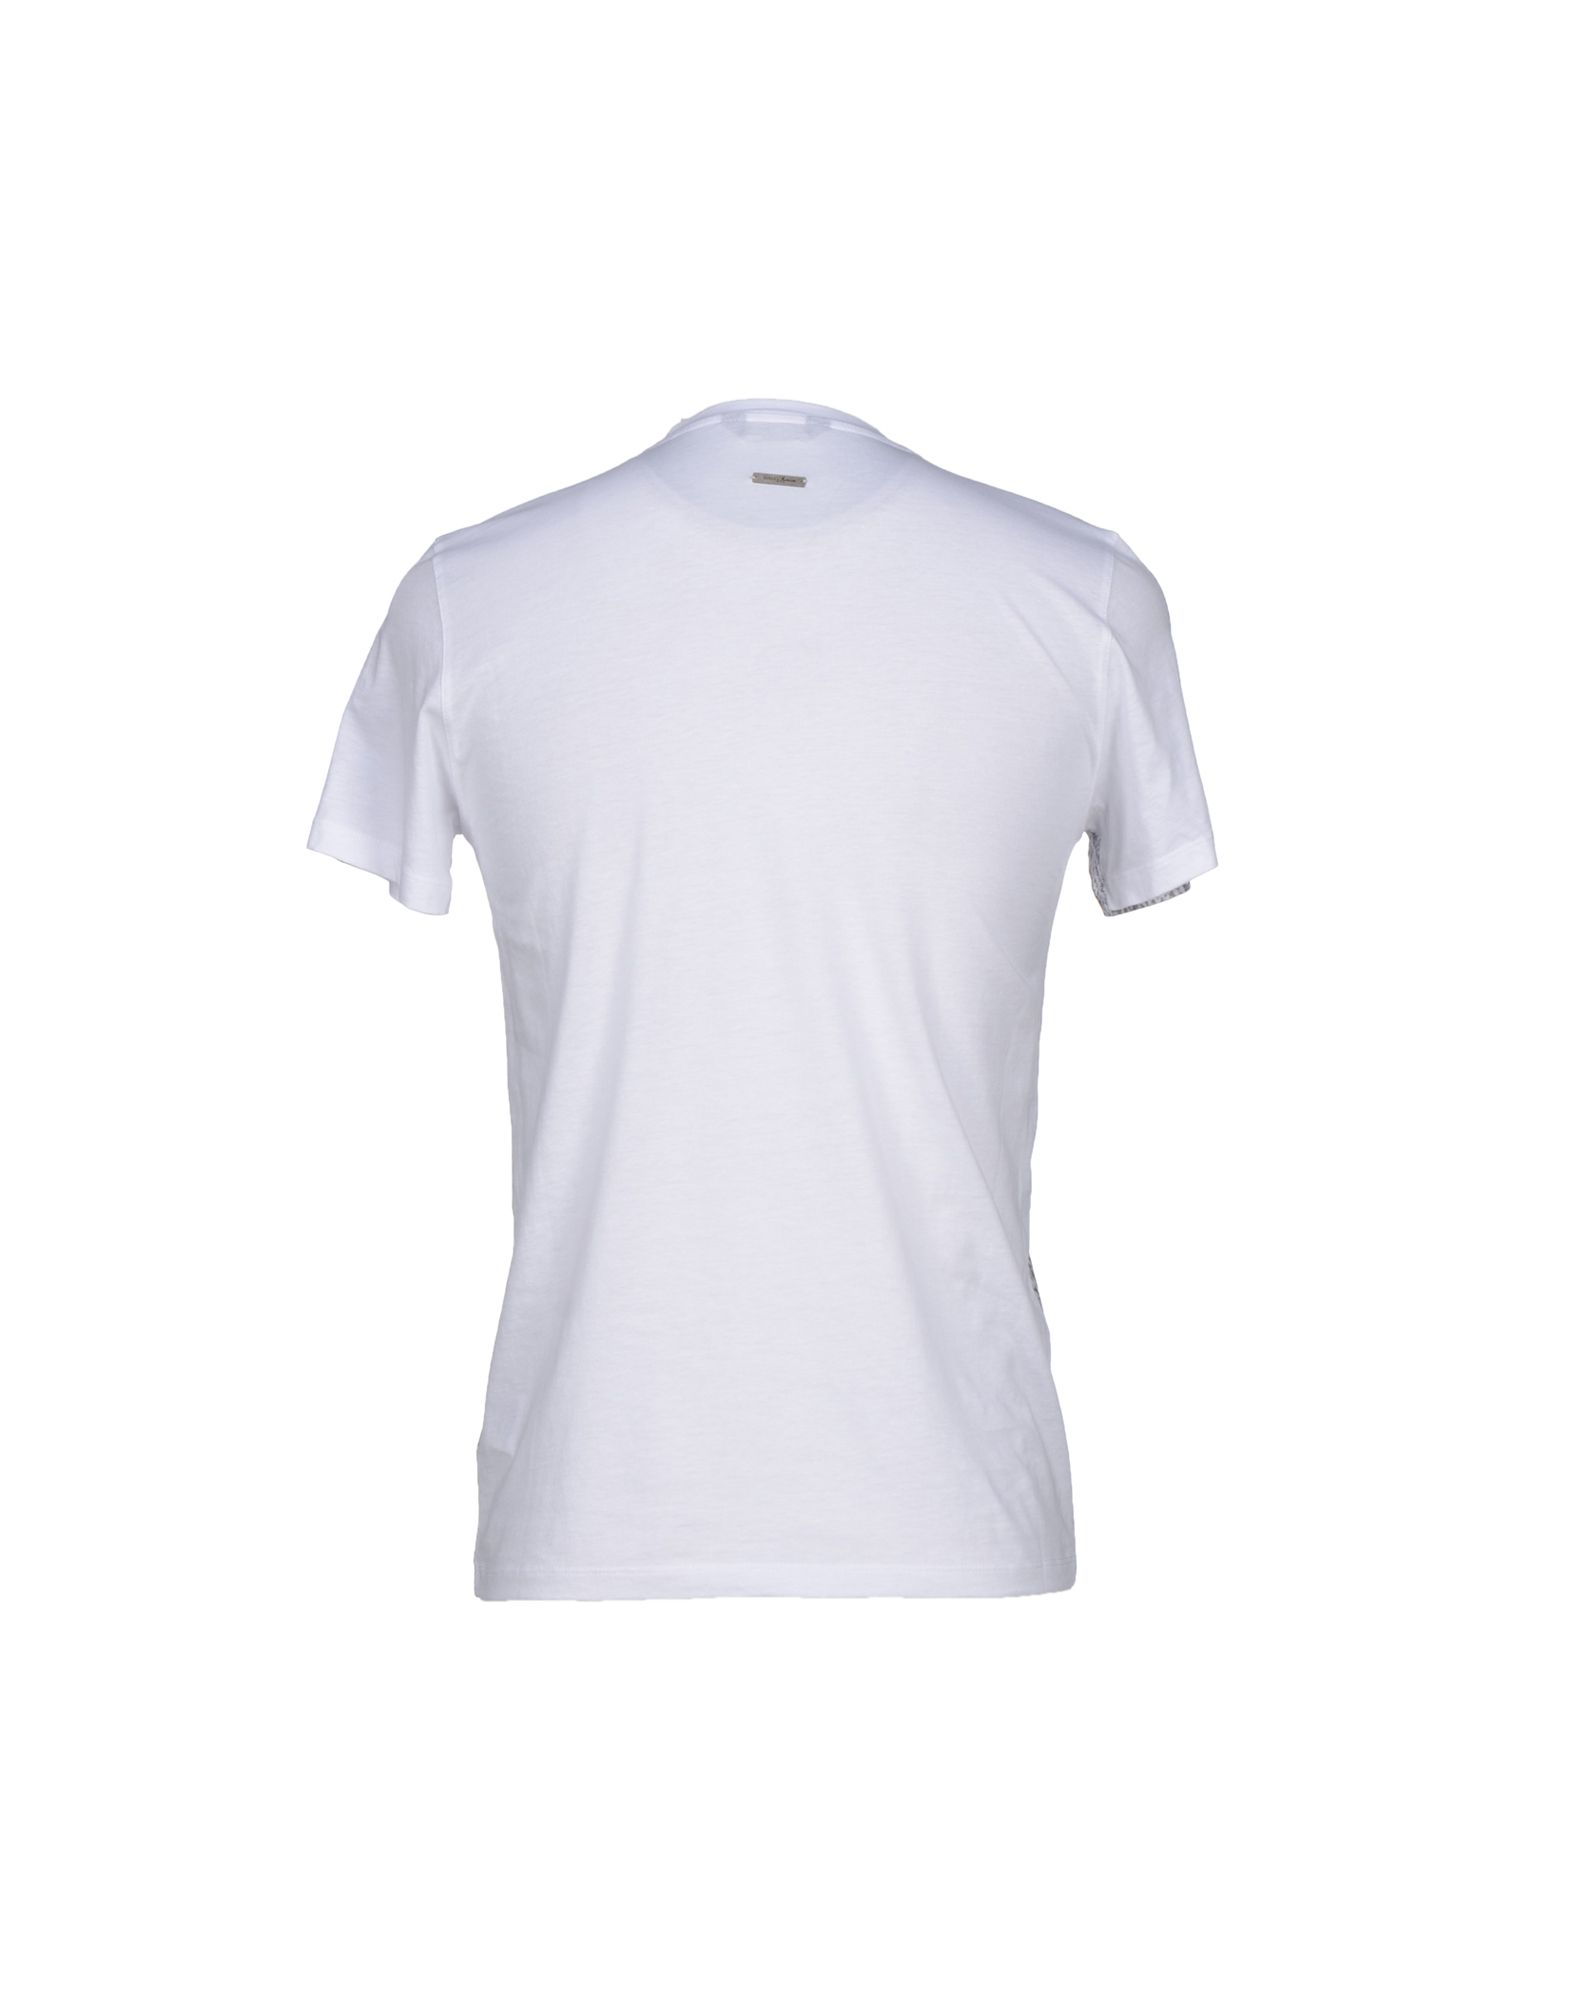 lyst guess t shirt in white for men. Black Bedroom Furniture Sets. Home Design Ideas